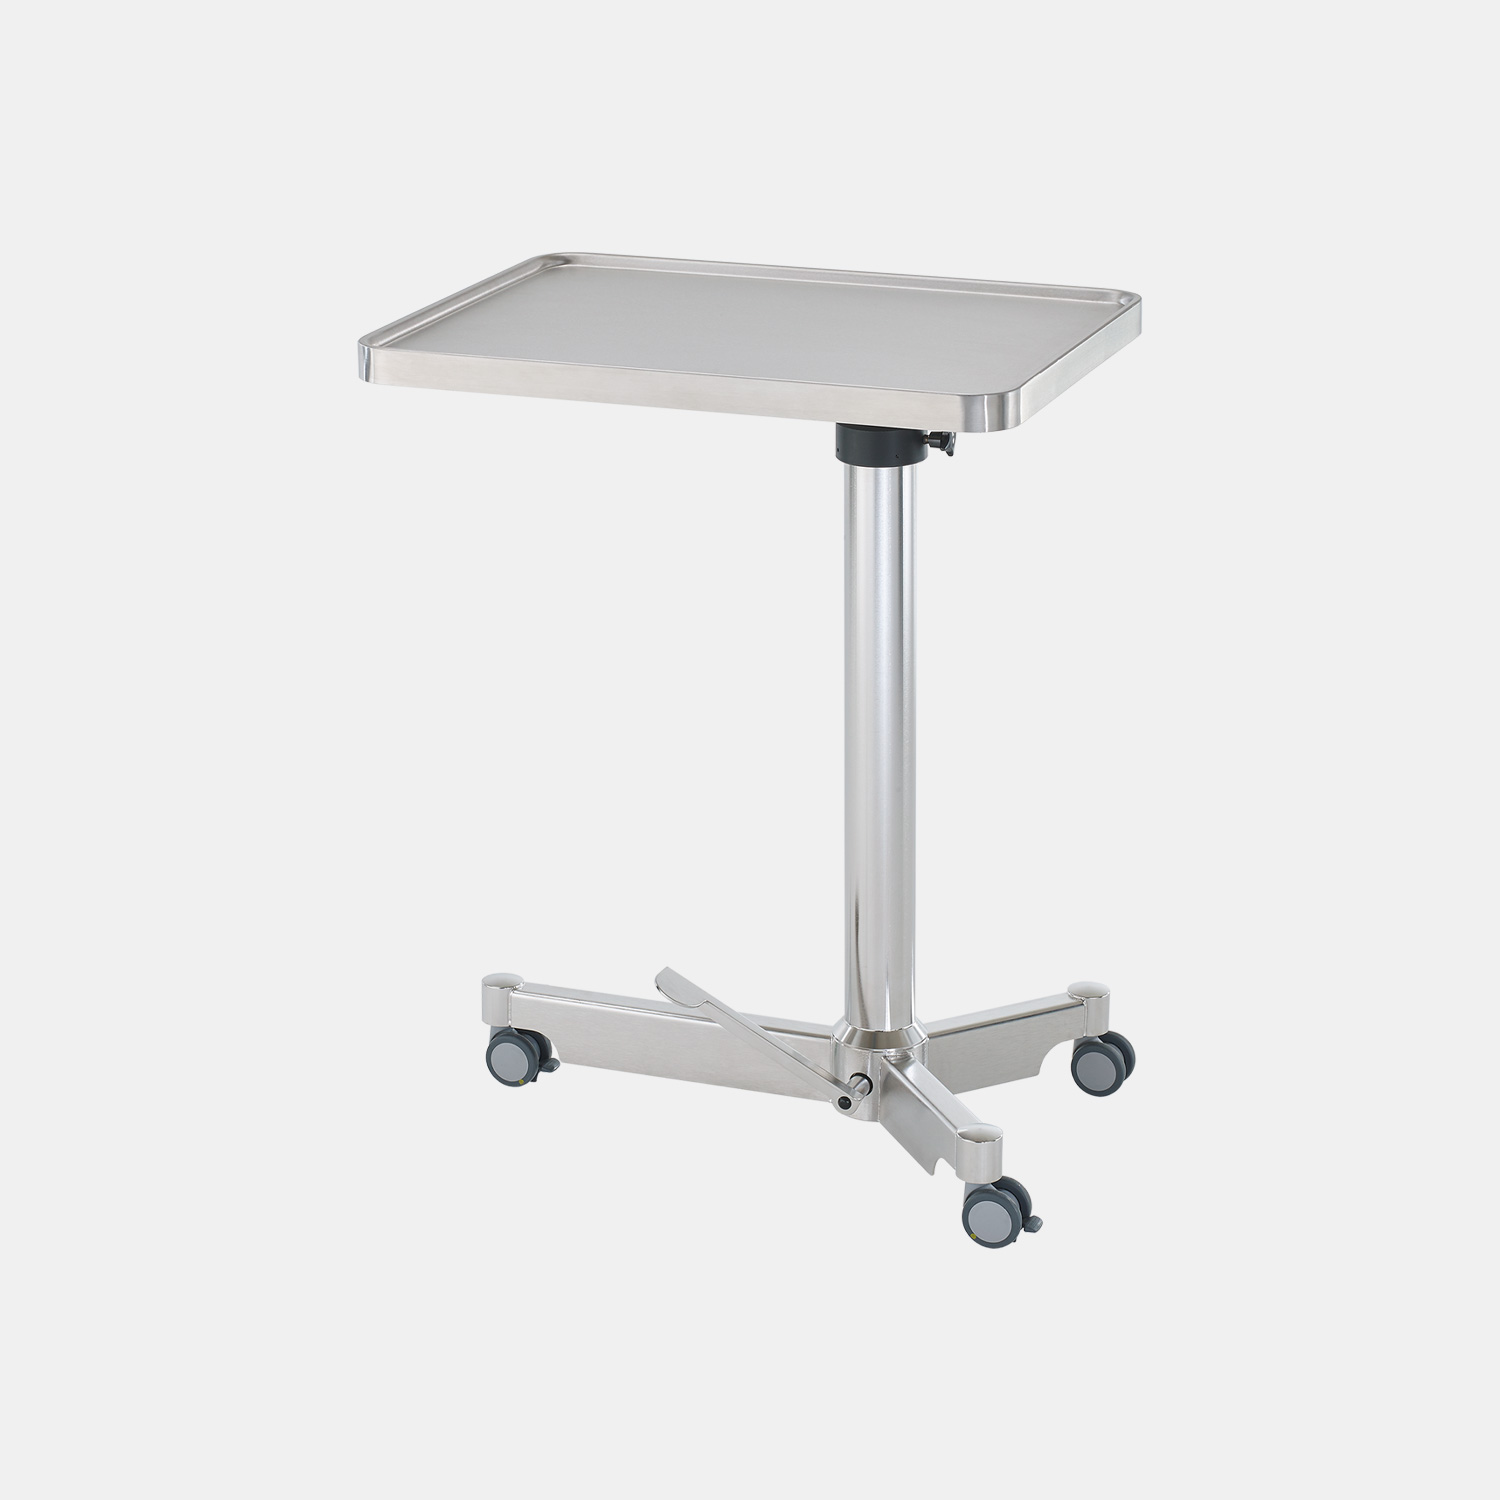 Hydraulic pump mayo instrument table